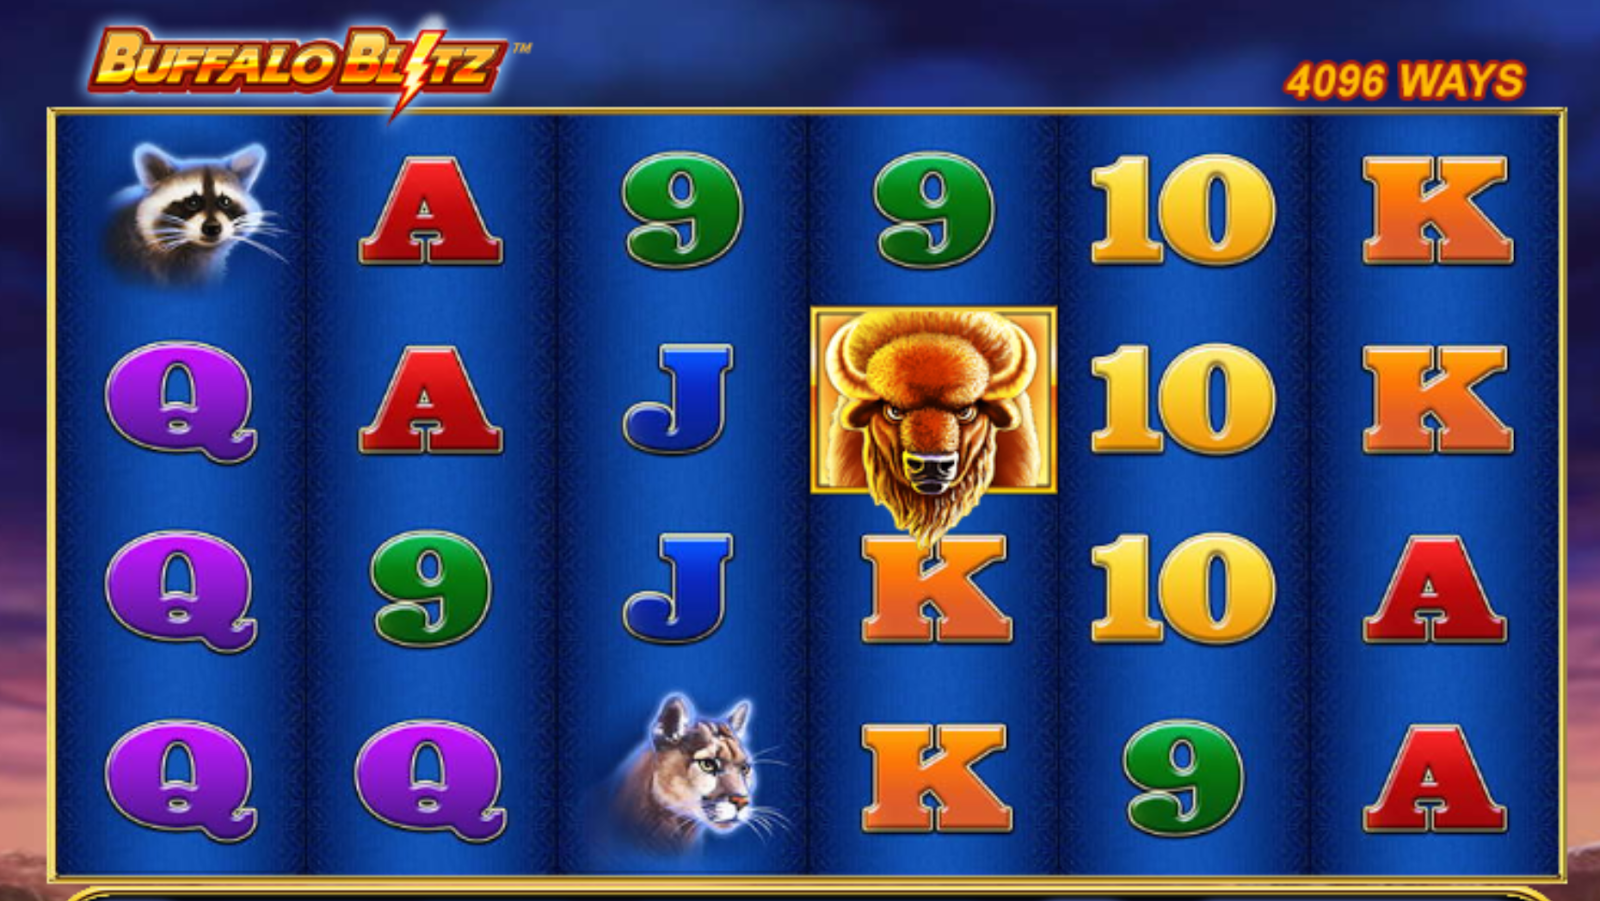 Buffalo Blitz is one of the best slot games you can play at The Sun Vegas Casino